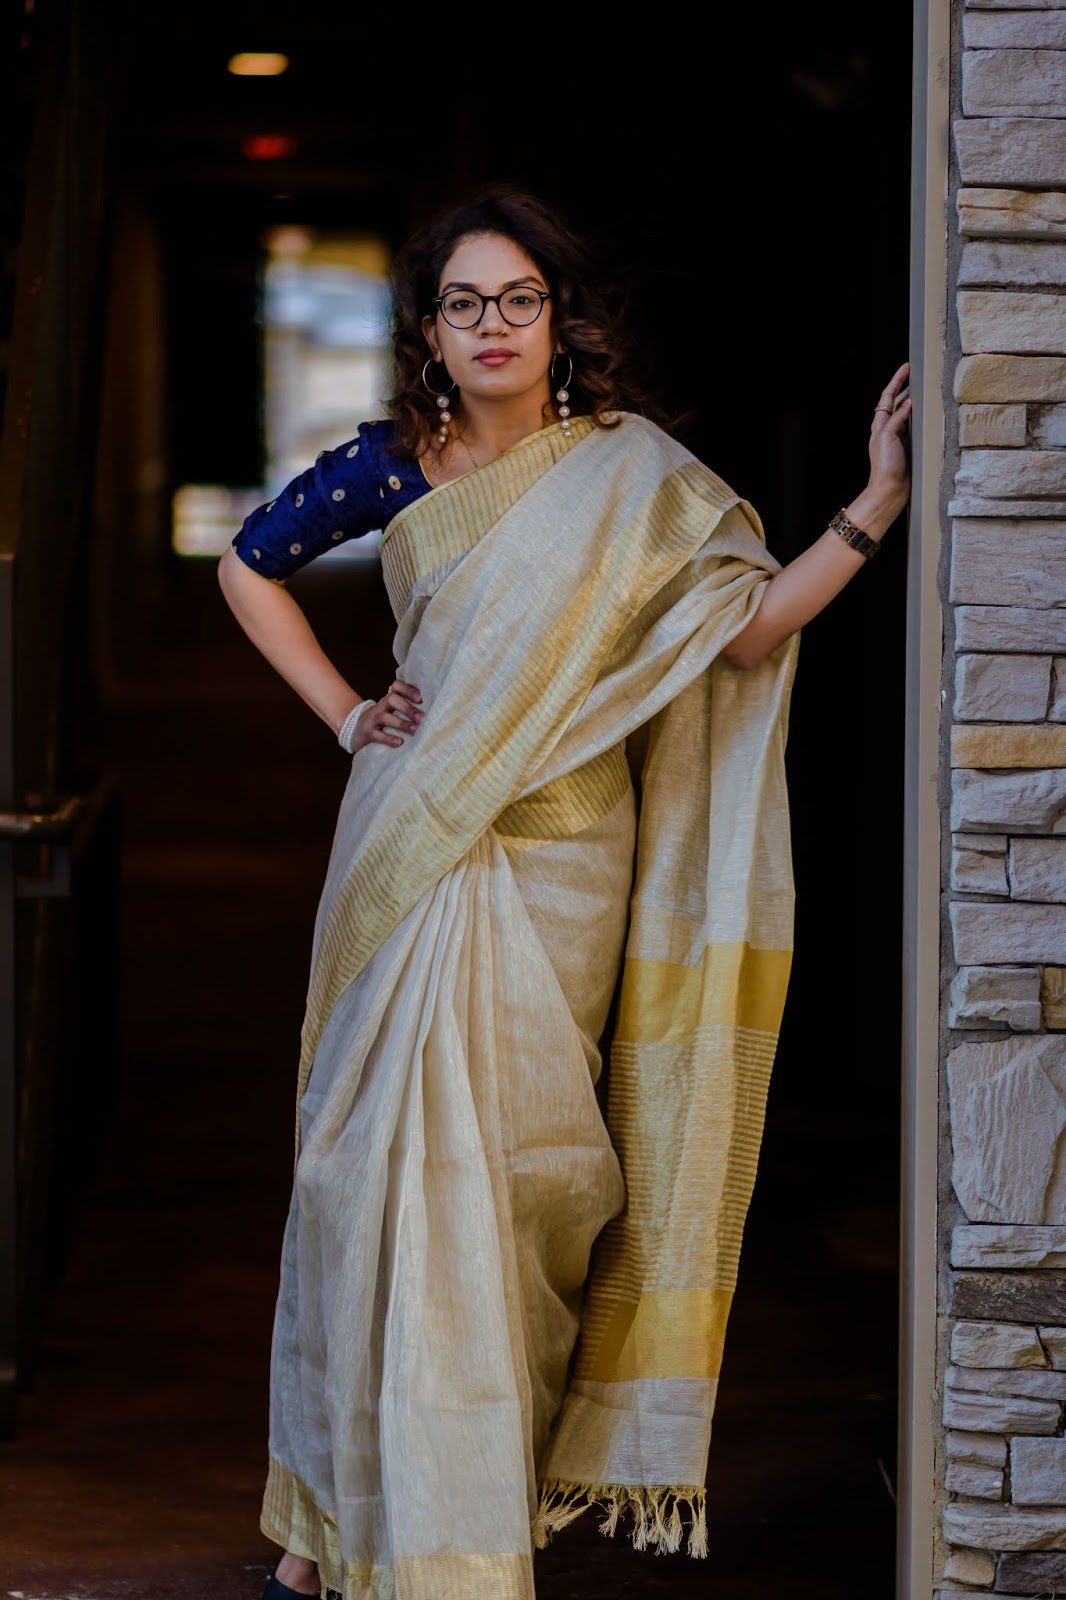 Saree, Aim For Glam, Wardrobe Essentials, Jord Watches, Perls, South Indian Fashion, Indian Fashion Blogger, Gold Tissue Saree, Le Svana, Prasanthi Kadiyala, Vizag Blogger, Hyderabad Fashion Blogger, Denver Blogger